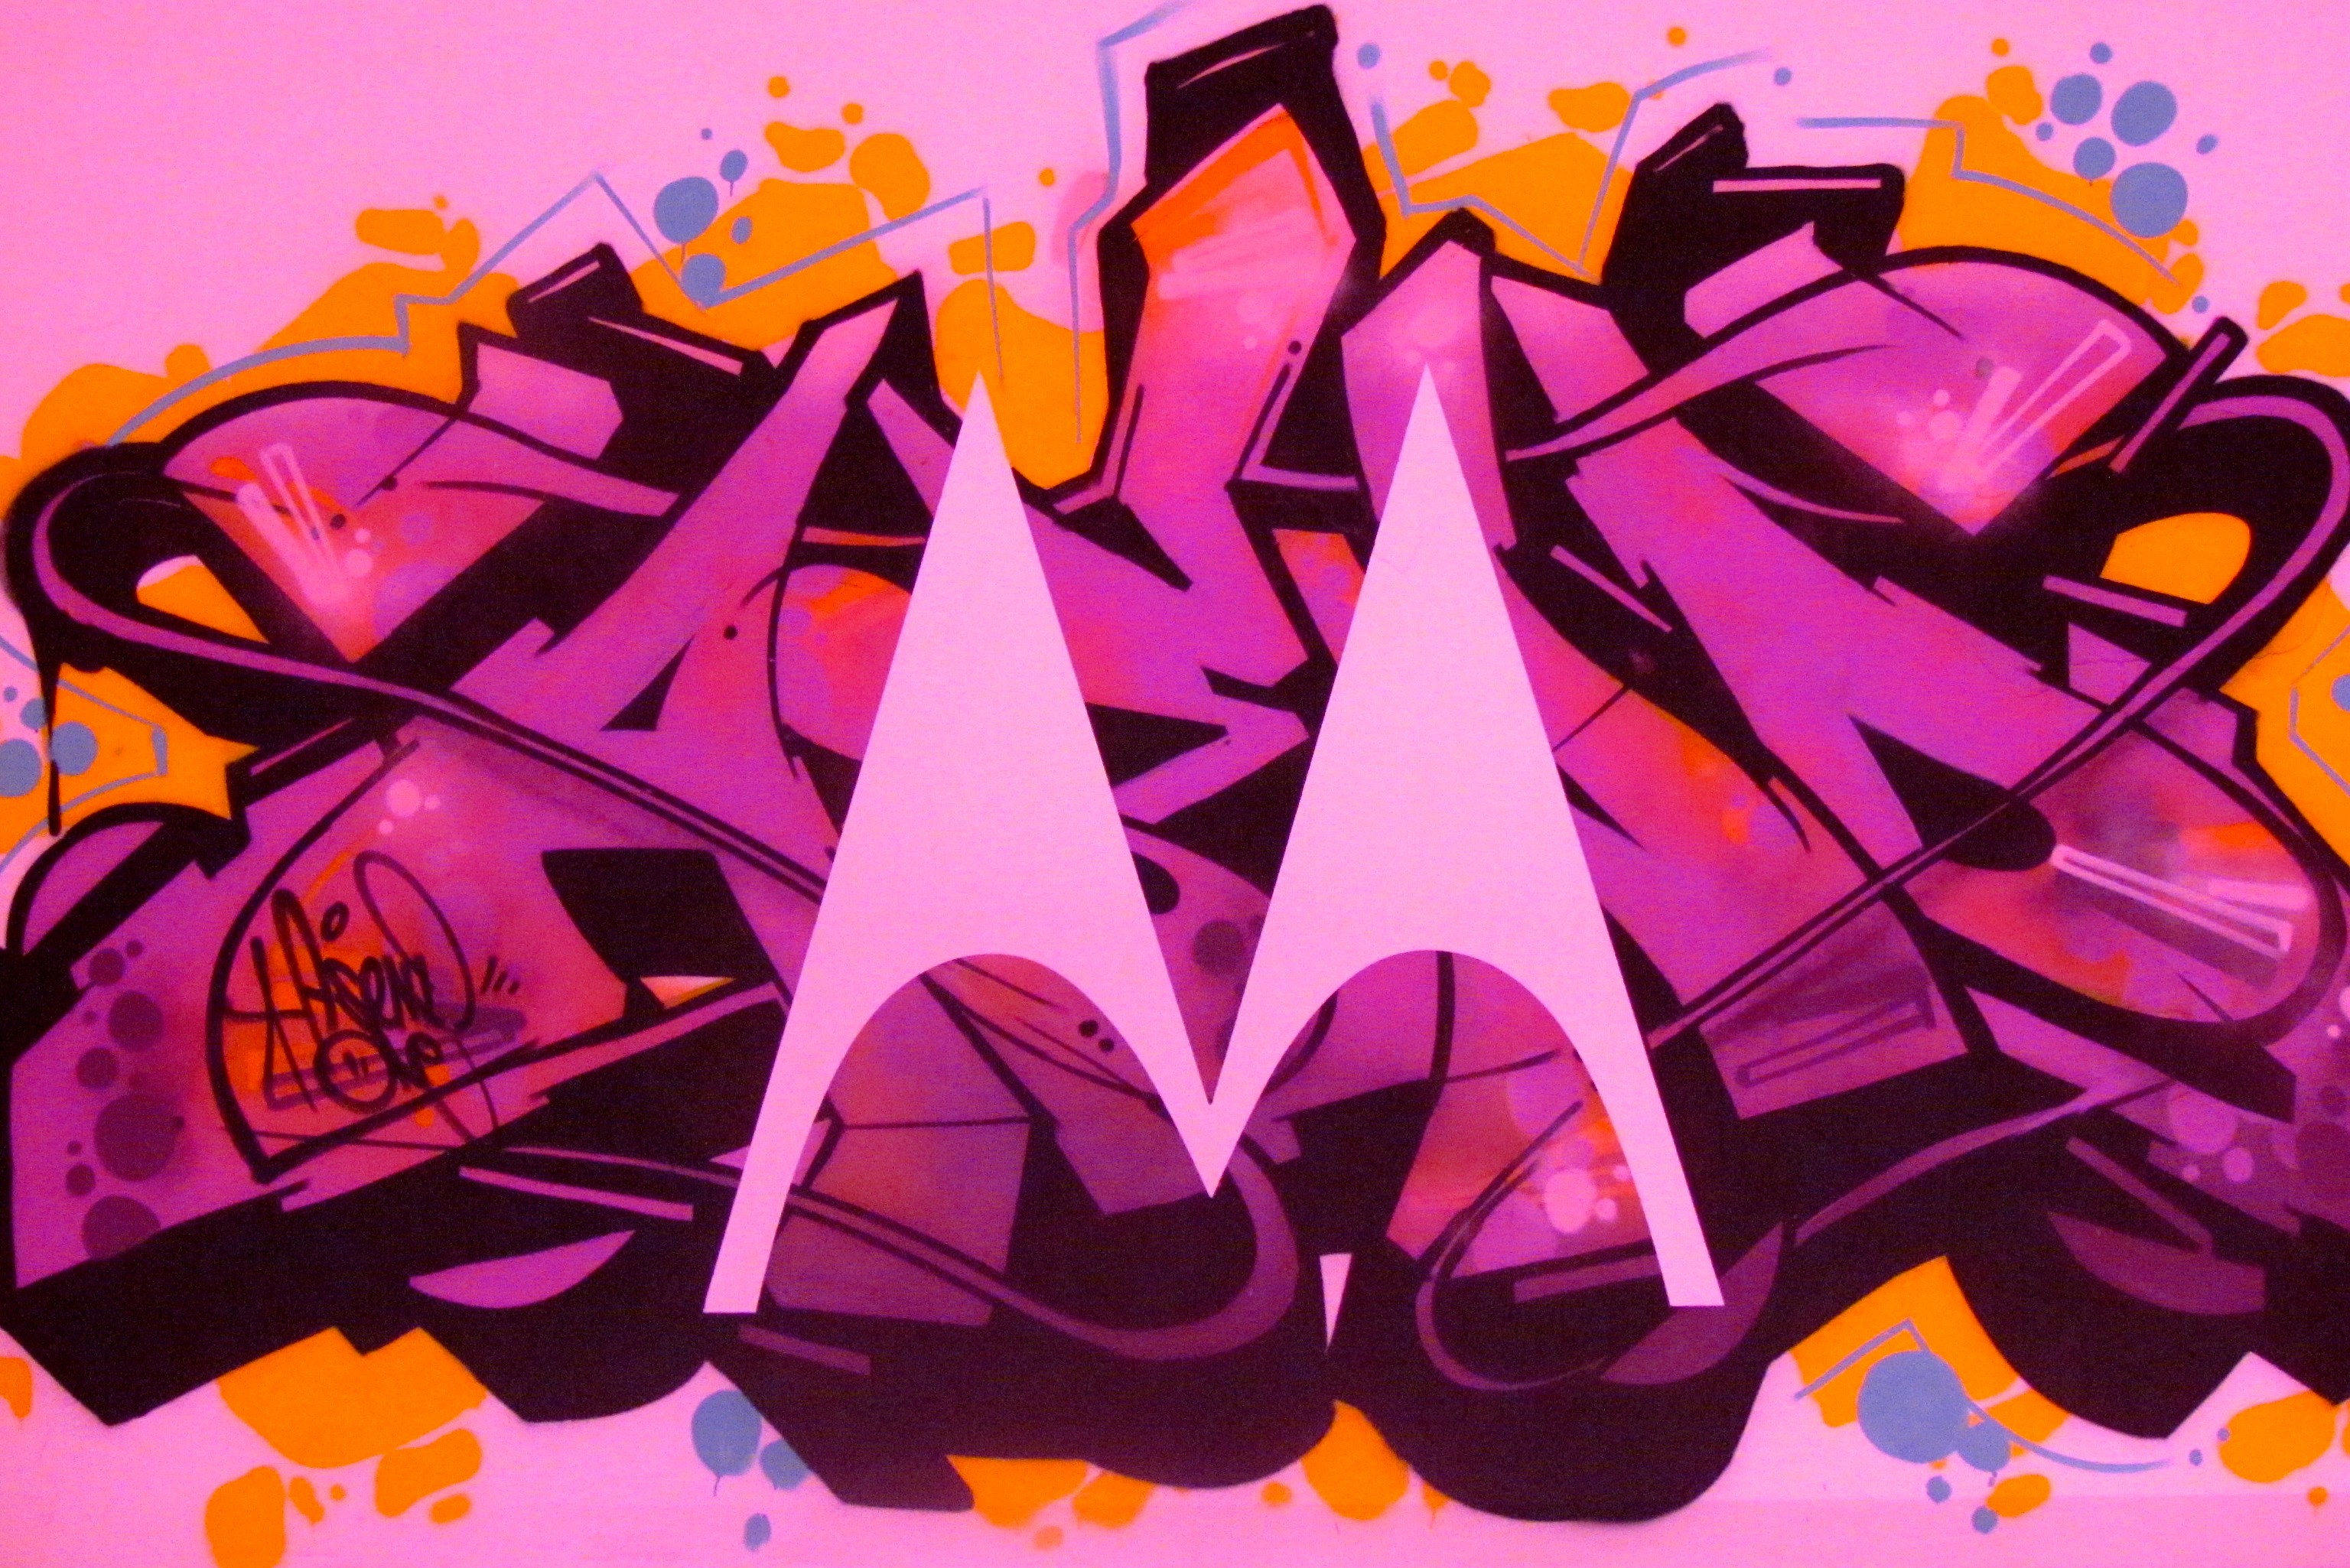 Motorola logo in graffiti